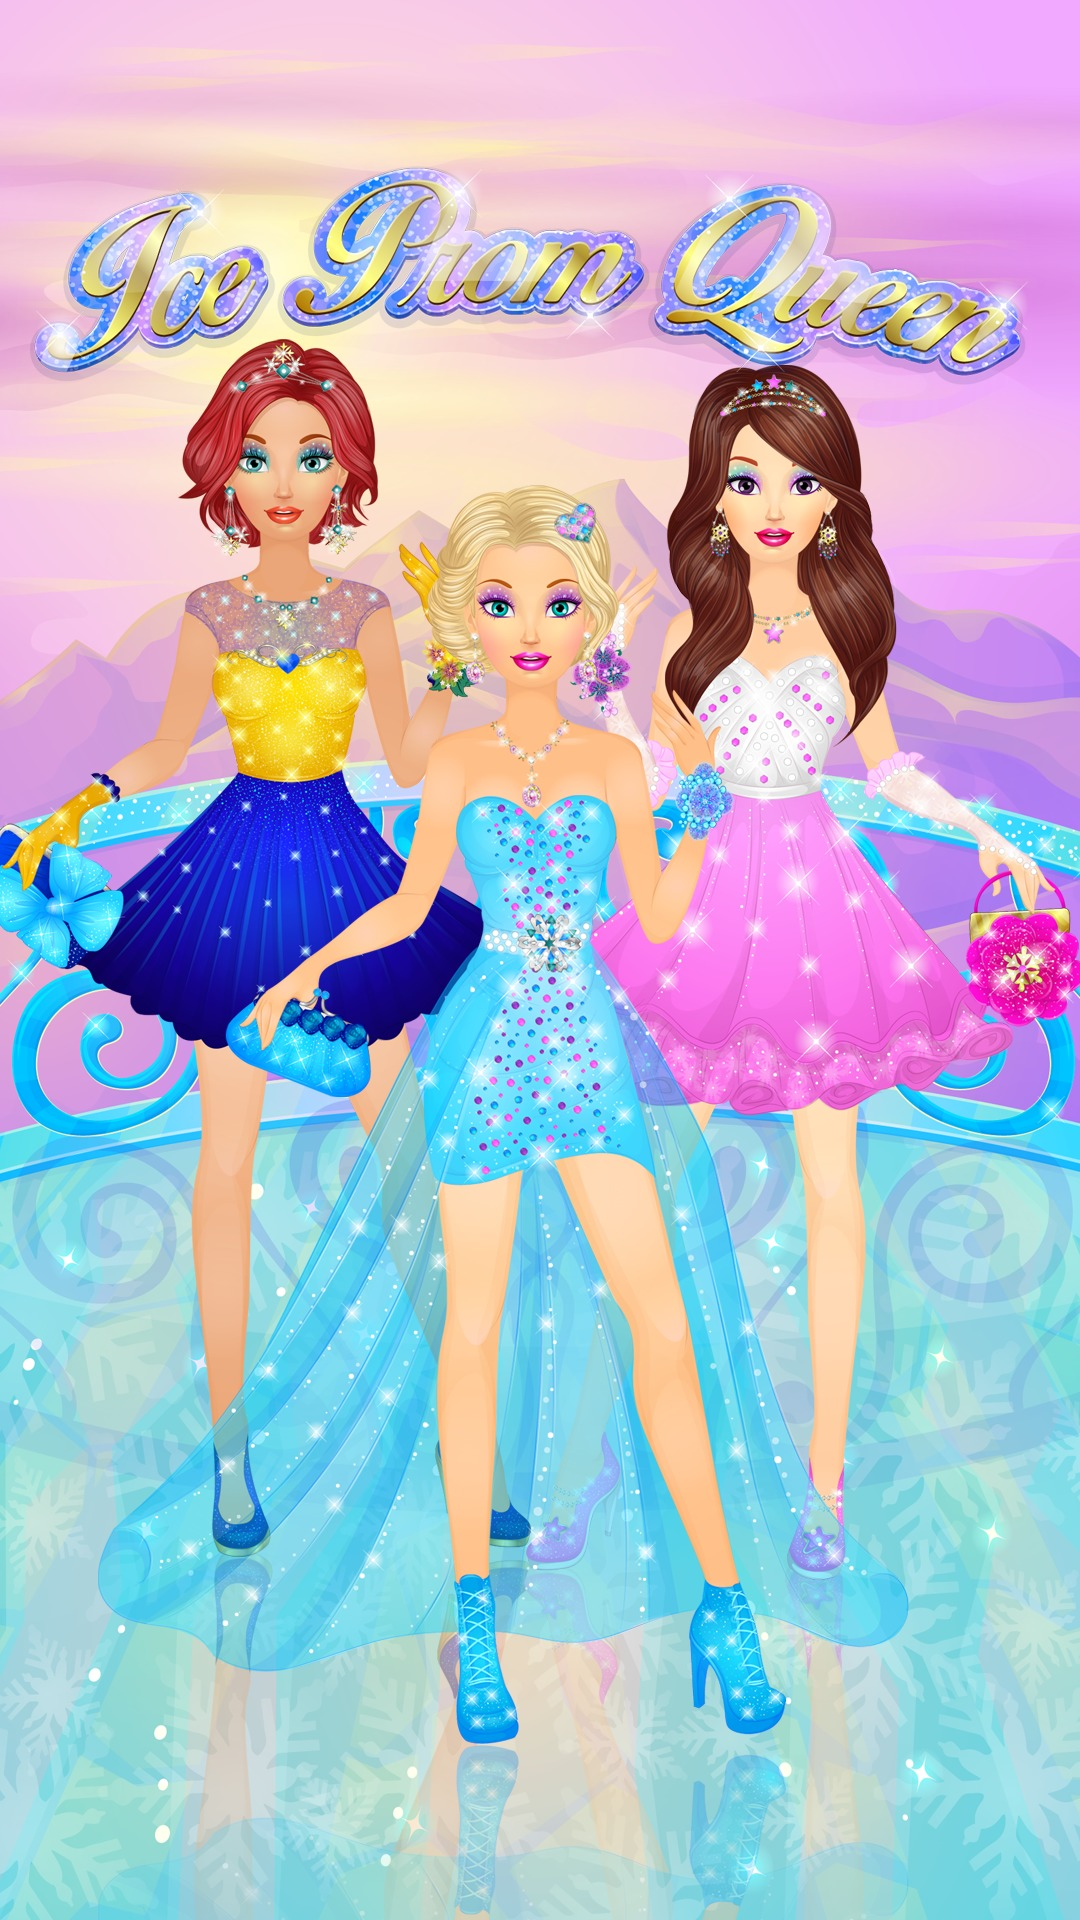 Dress up princess - Amazon Com Ice Prom Queen Salon Princess Spa Makeup And Dress Up Girls Games Appstore For Android